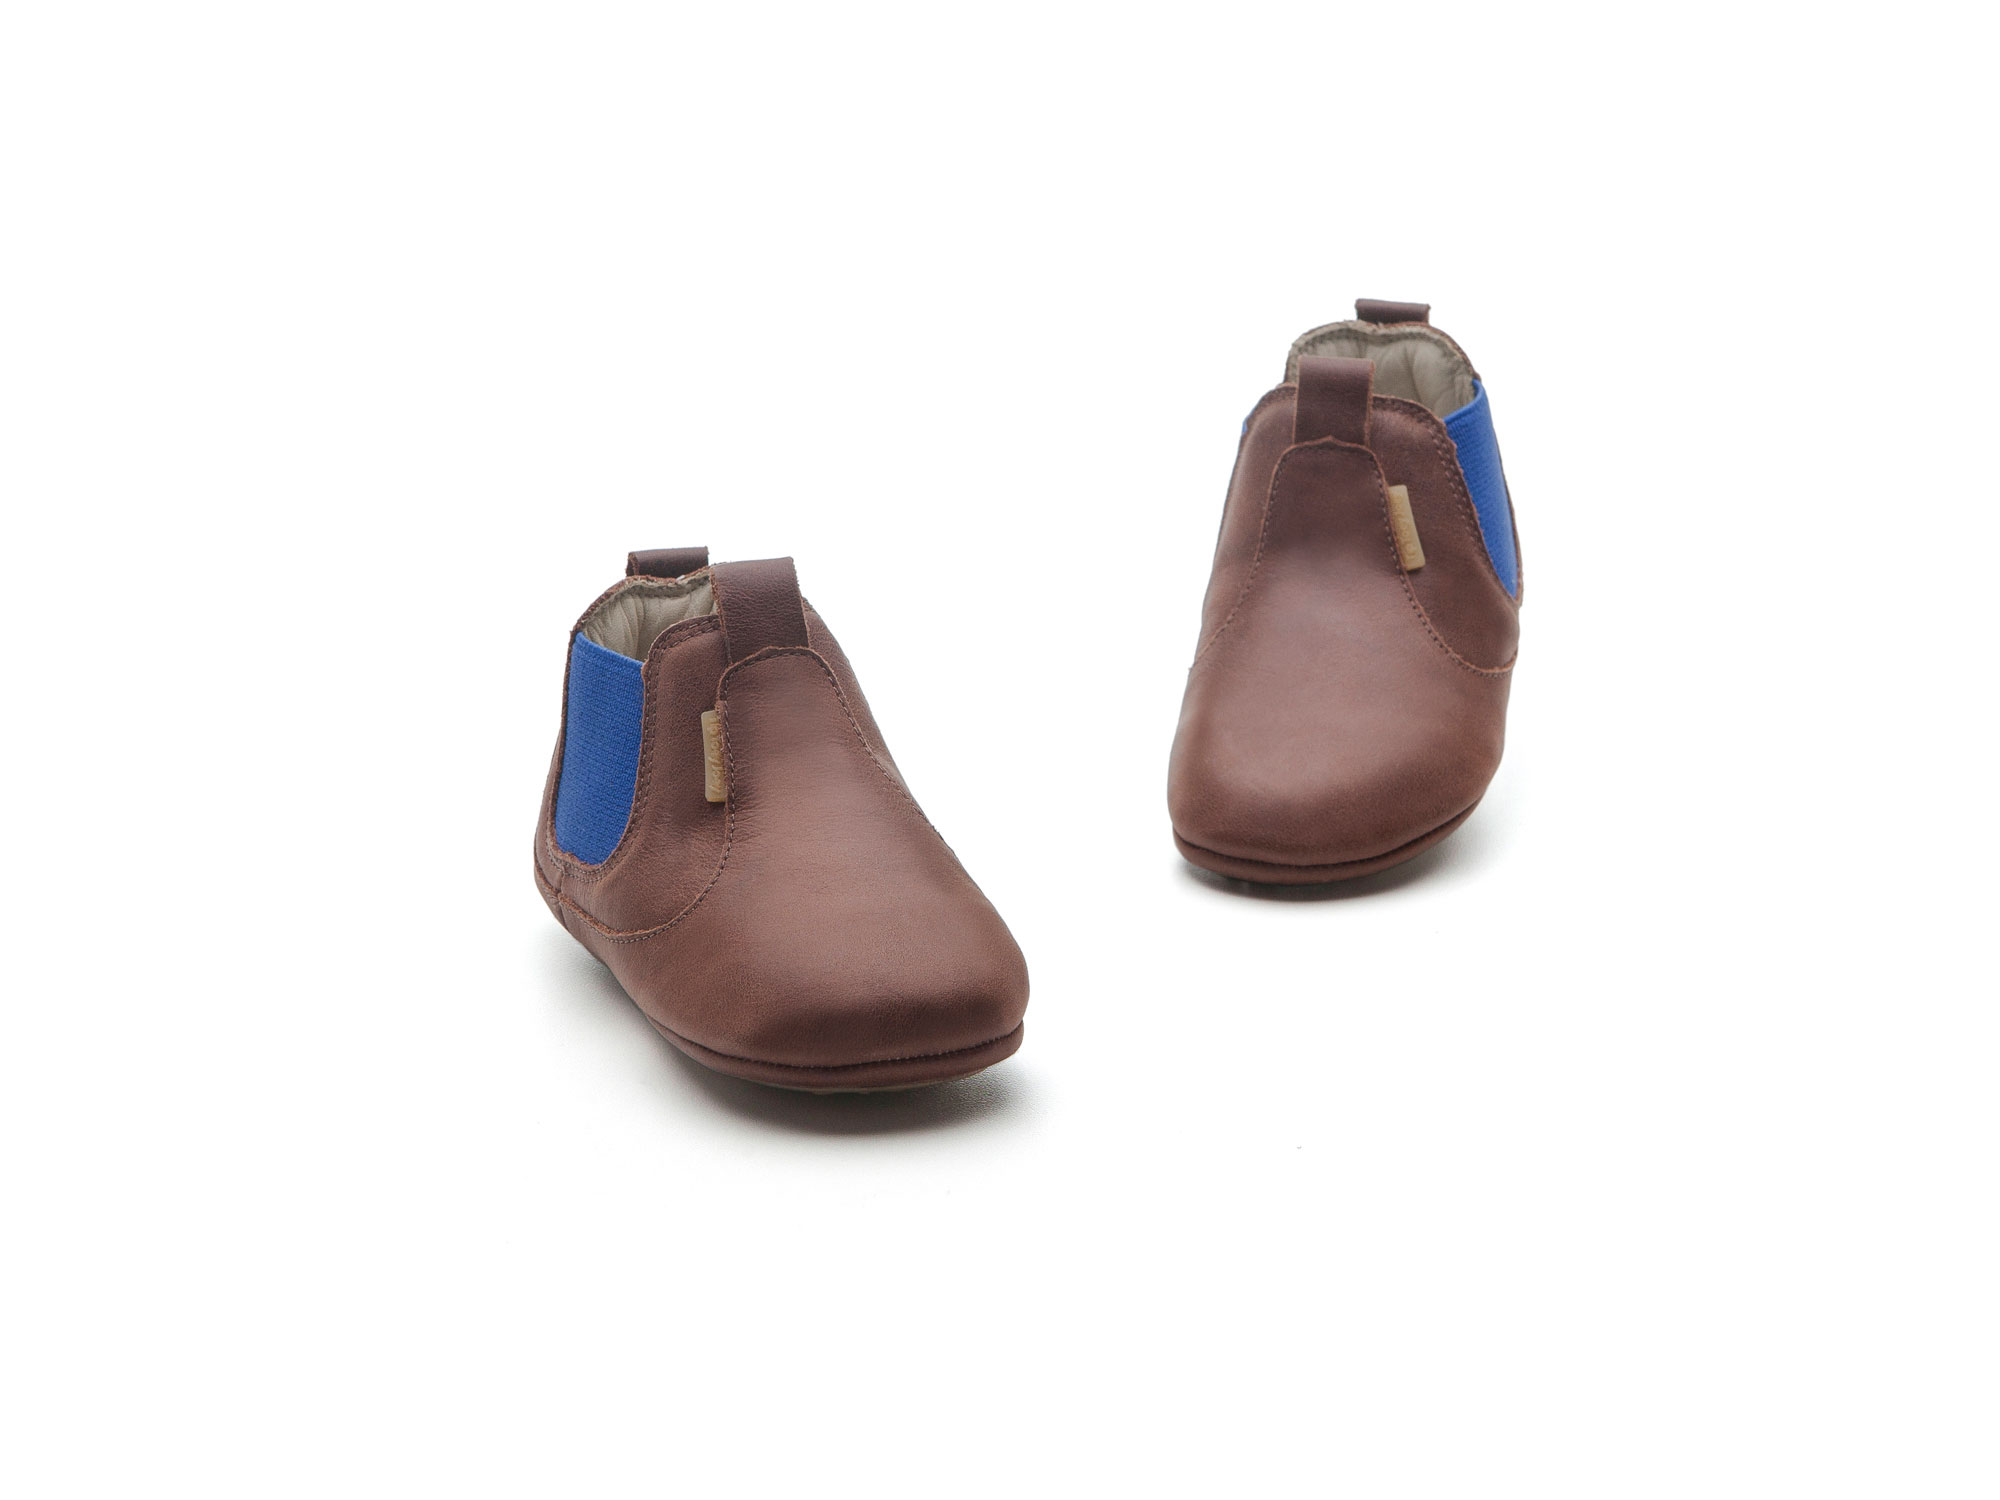 Boot Kicky Old Tan/ Royal Baby for ages 0 to 2 years - 1